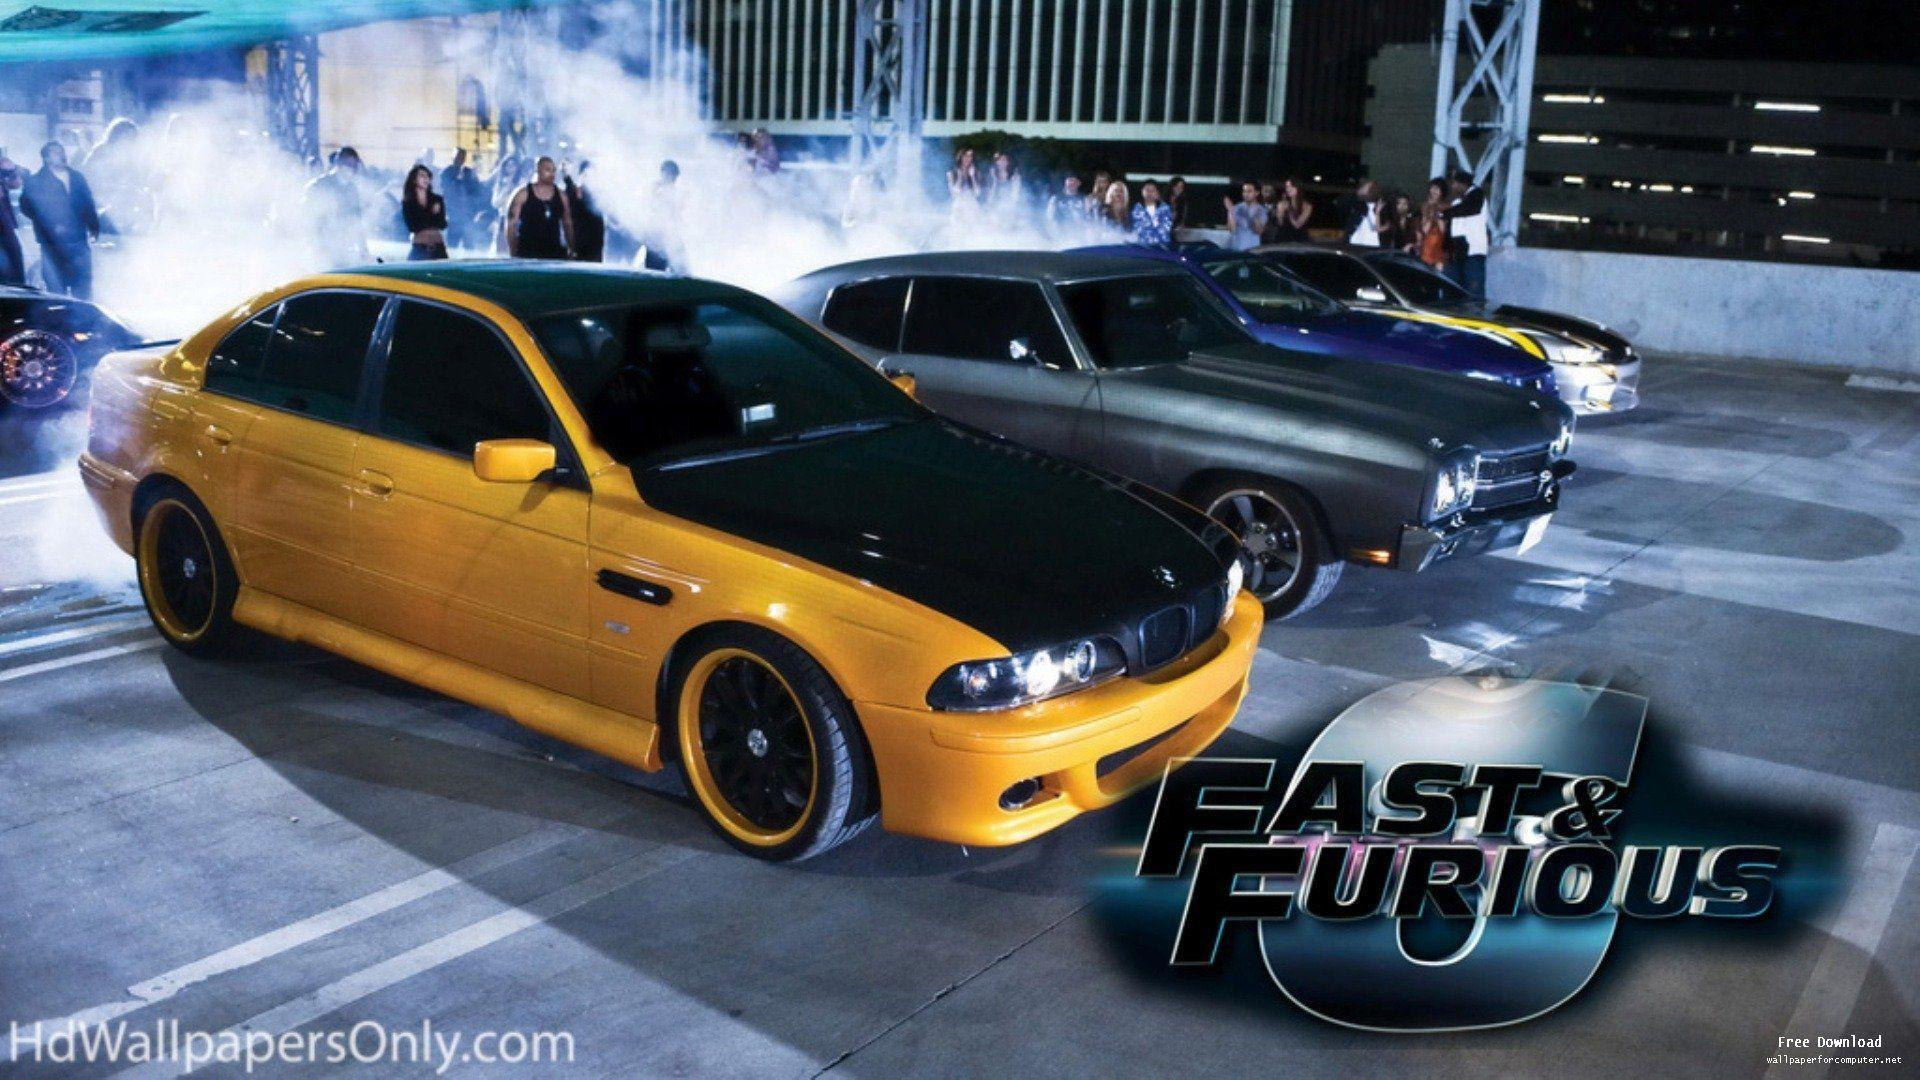 Fast And Furious 7 Cars Wallpapers Top Free Fast And